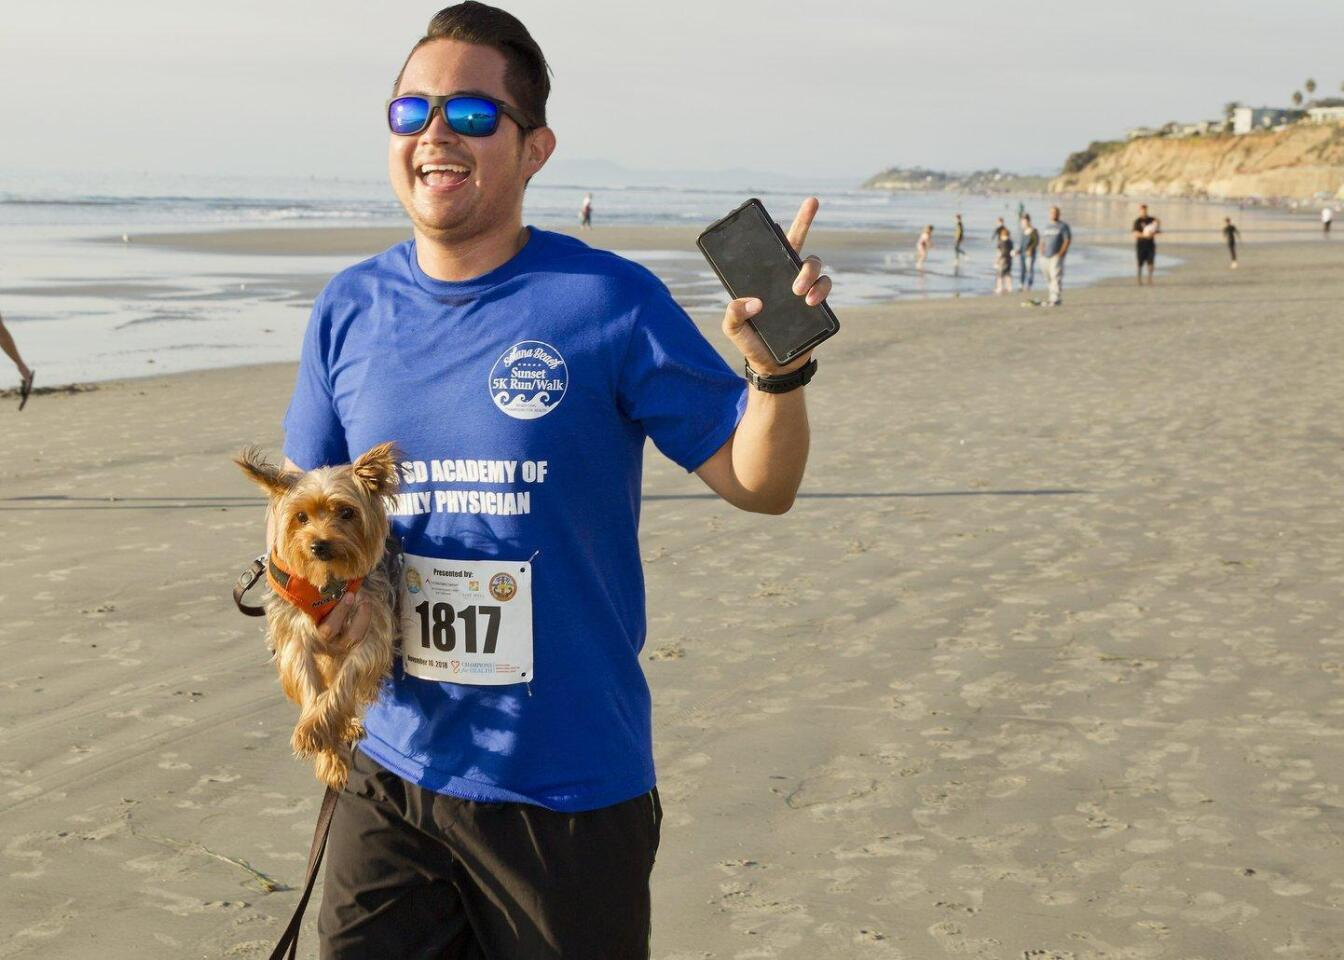 Solana Beach Sunset 5K Fun Run/Walk and Wellness Expo